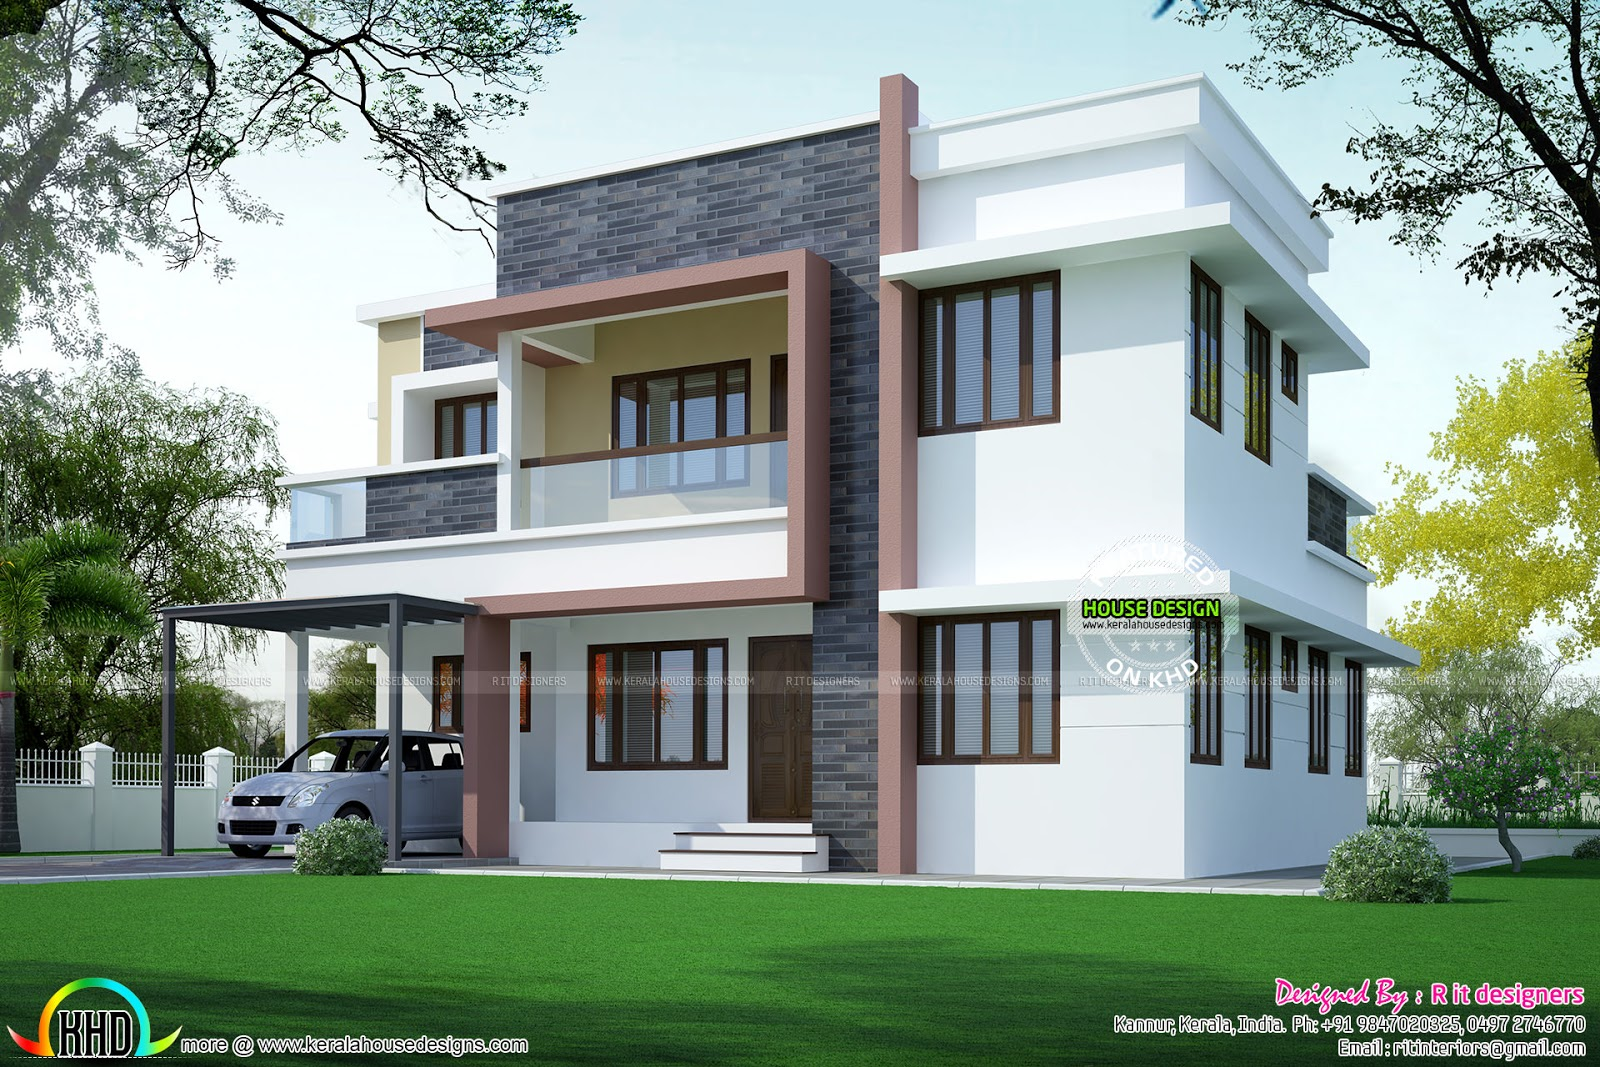 Simple home plan in modern style kerala home design and for Kerala modern house designs